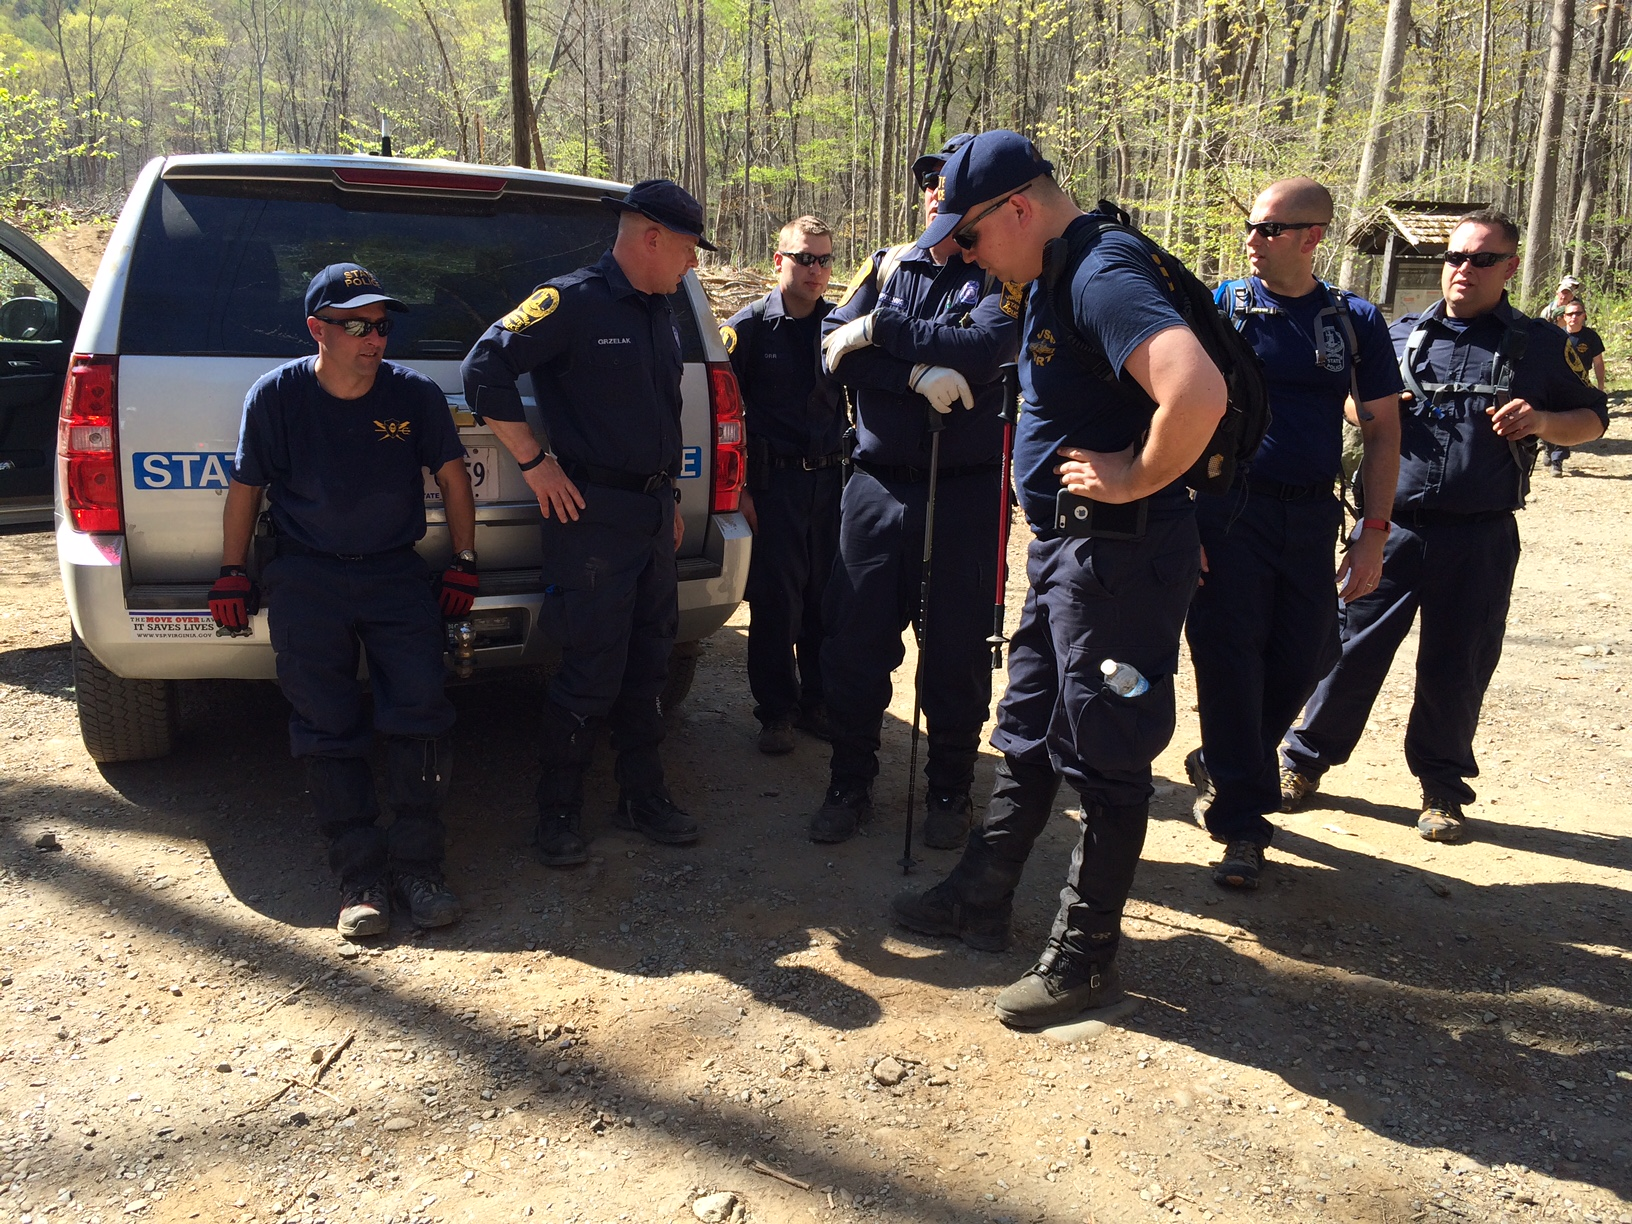 Search continues for missing firefighter as tips flood in